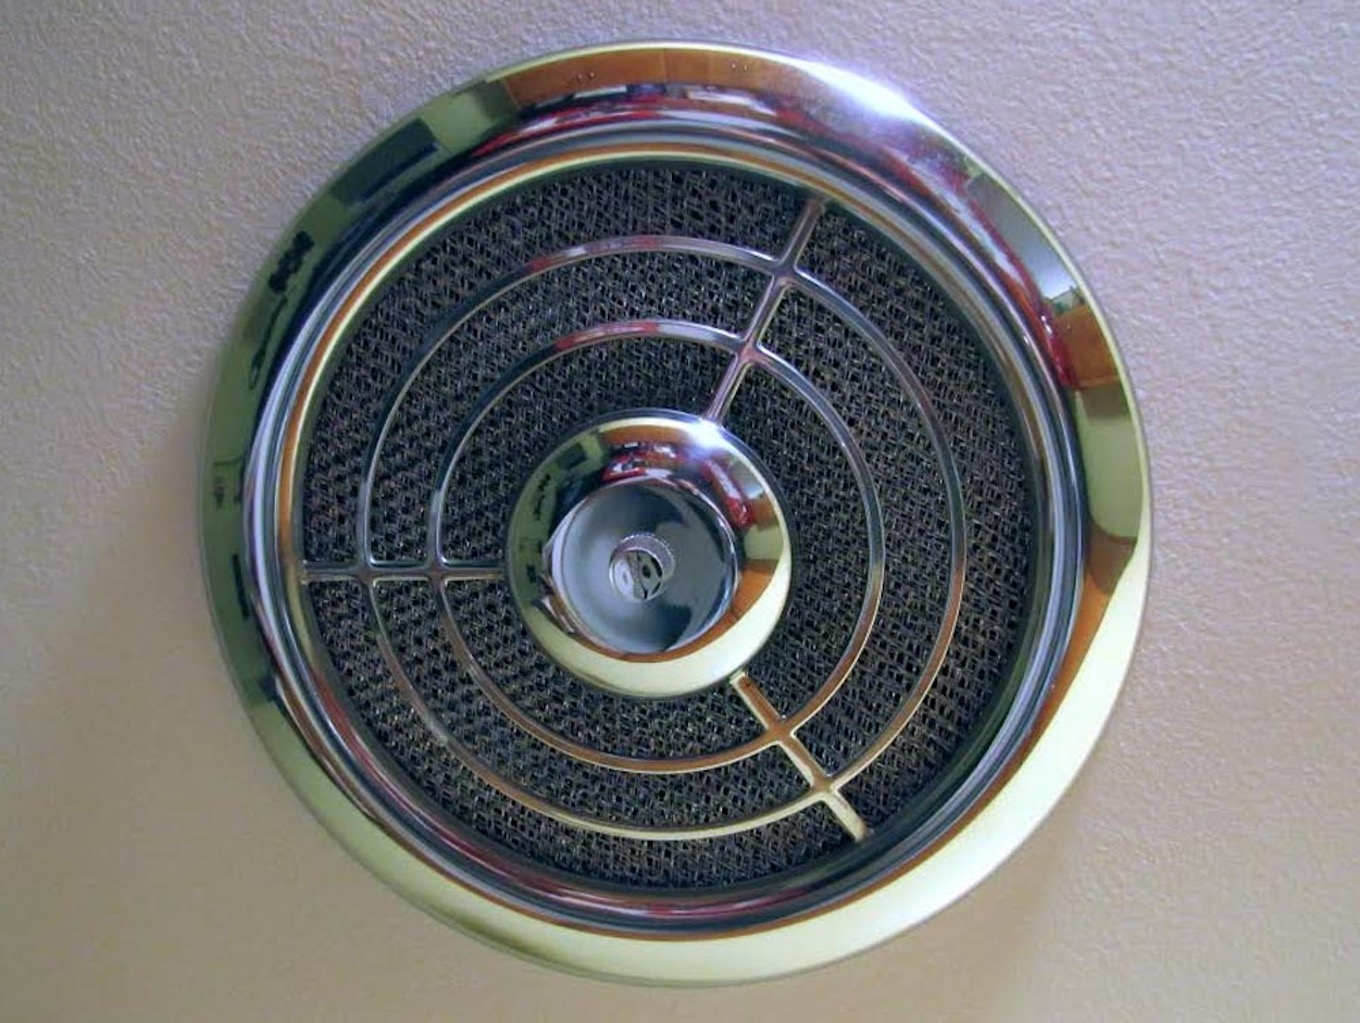 Nutone Exhaust Fan Cover – Madison Art Center Design